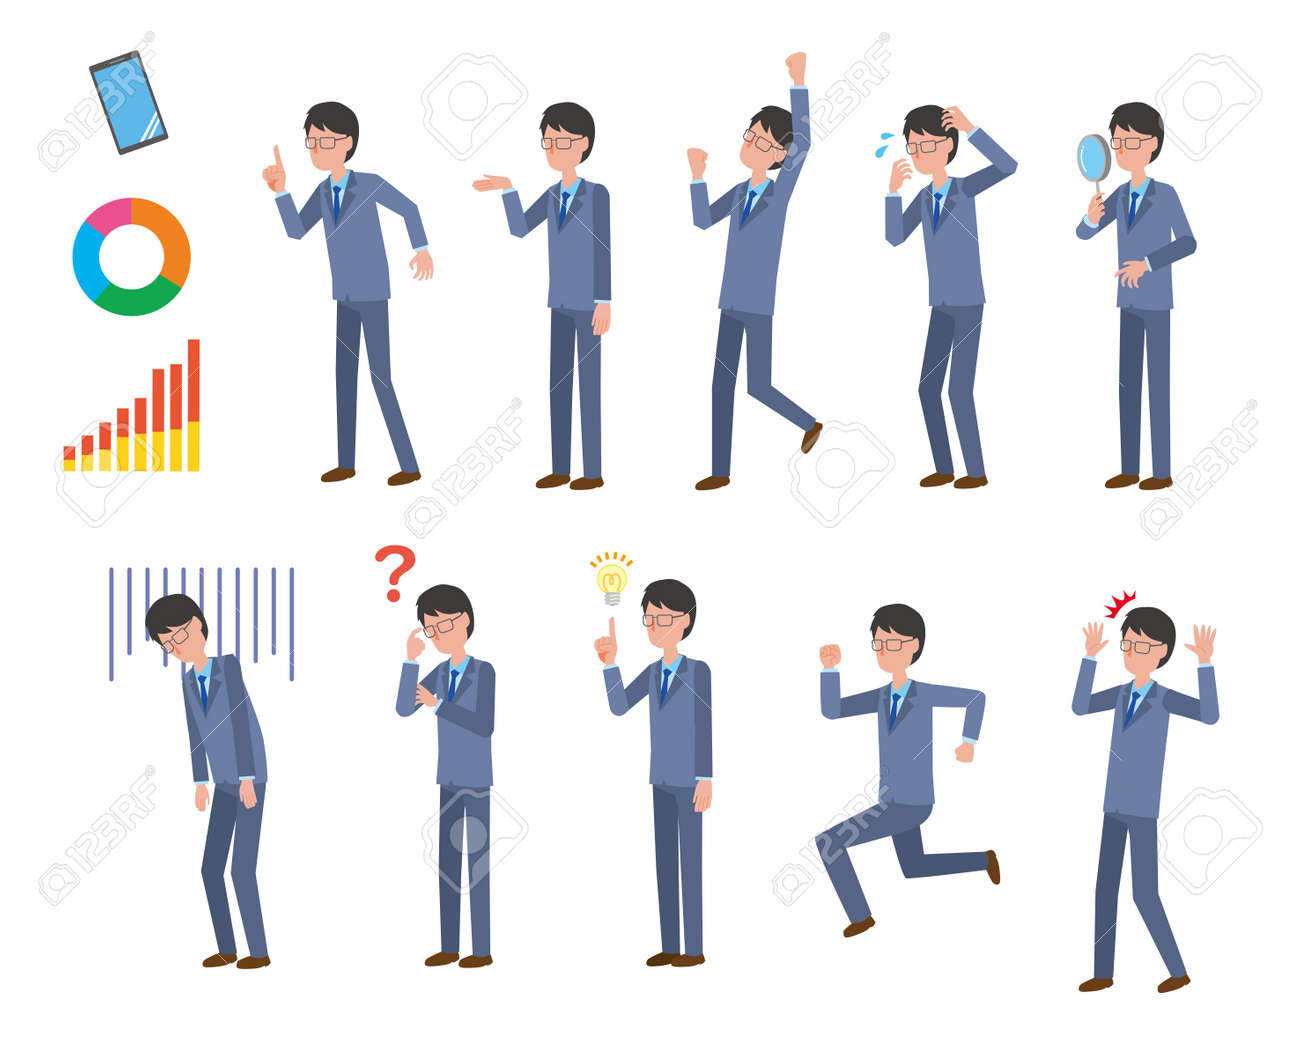 Various pose illustration sets for male office workers in suits - 163338816